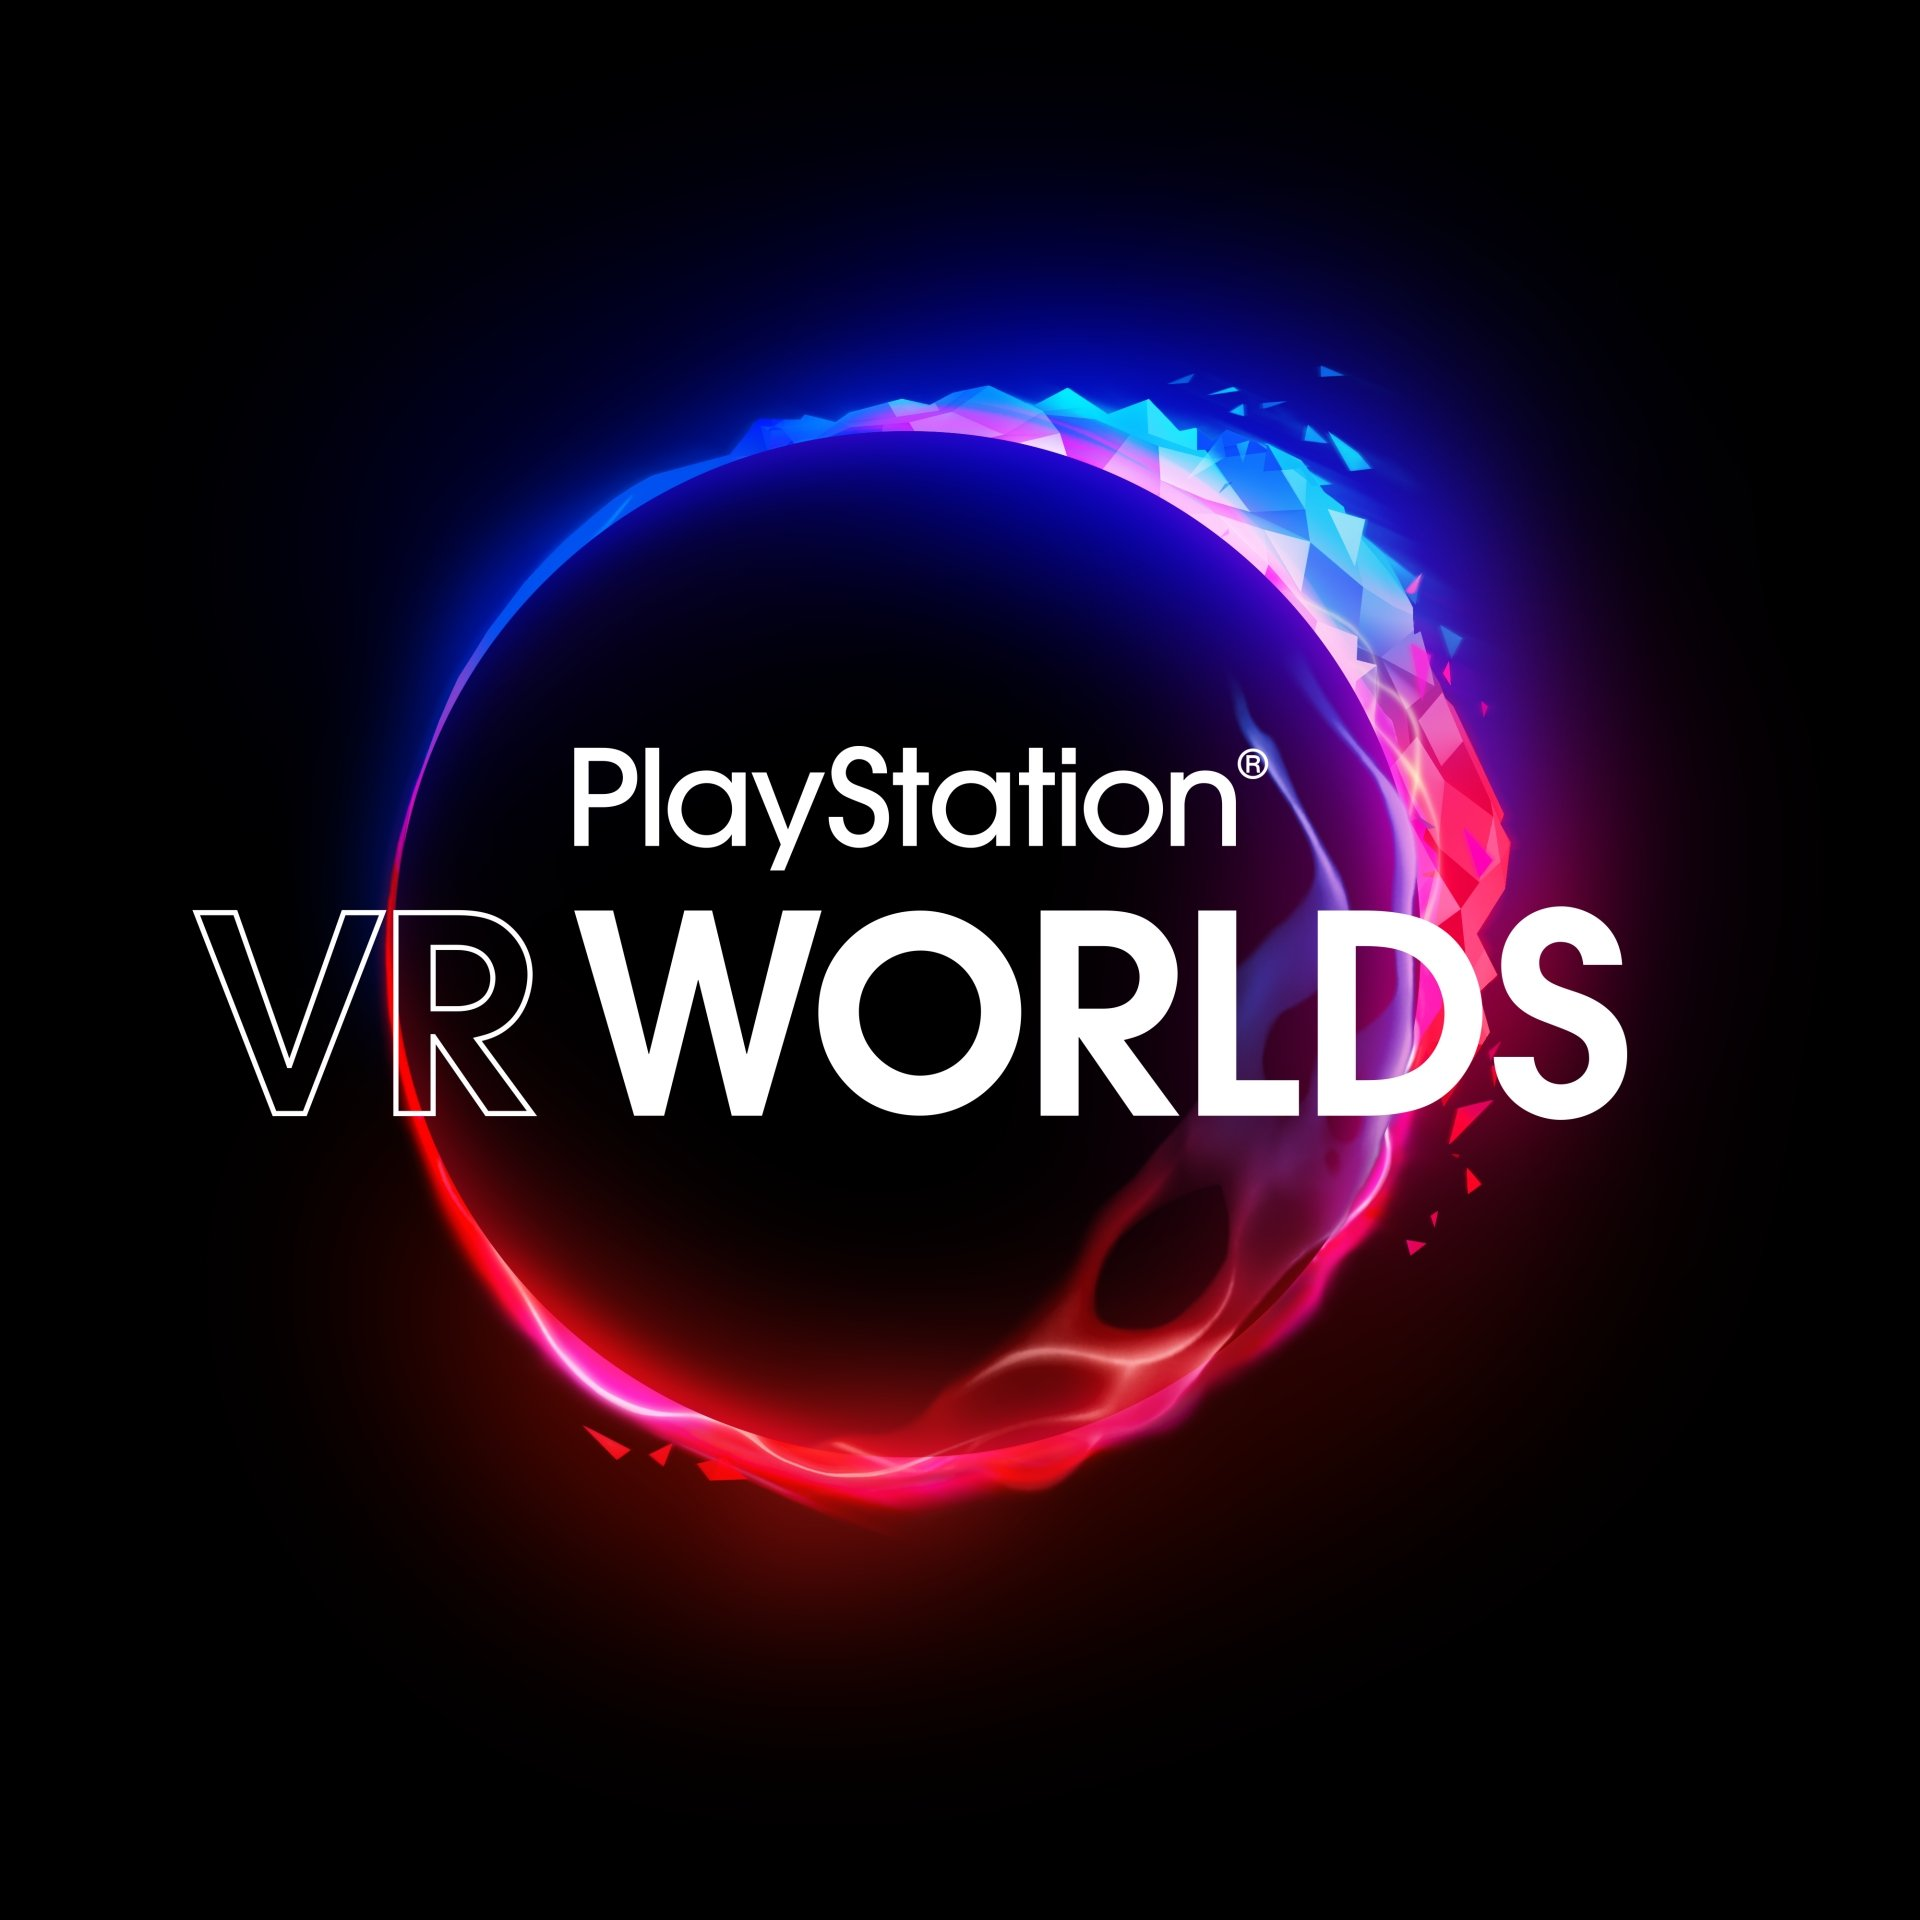 「PlayStation VR Worlds」